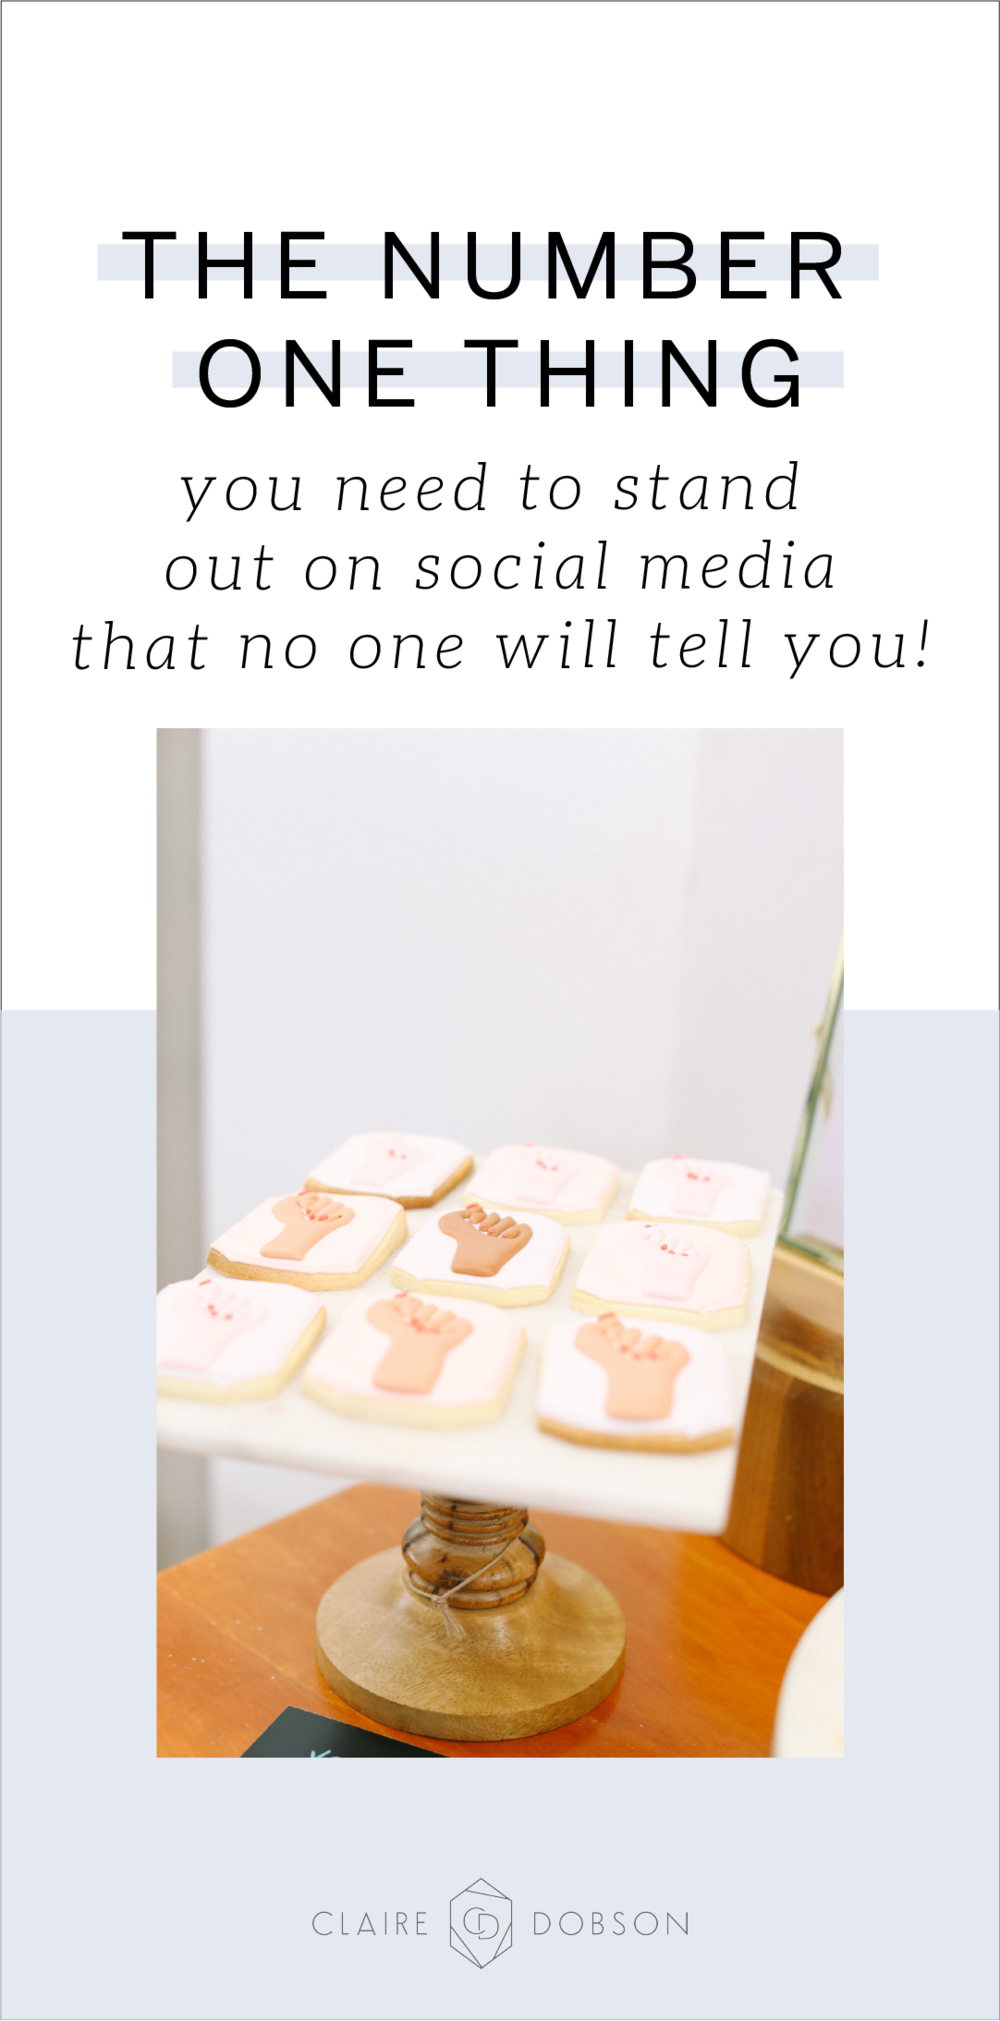 How to stand out and make your mark on social media. Learn the number one thing you need to know to stand out on social media that no one will tell you! #socialmediamarketing #instagramtips